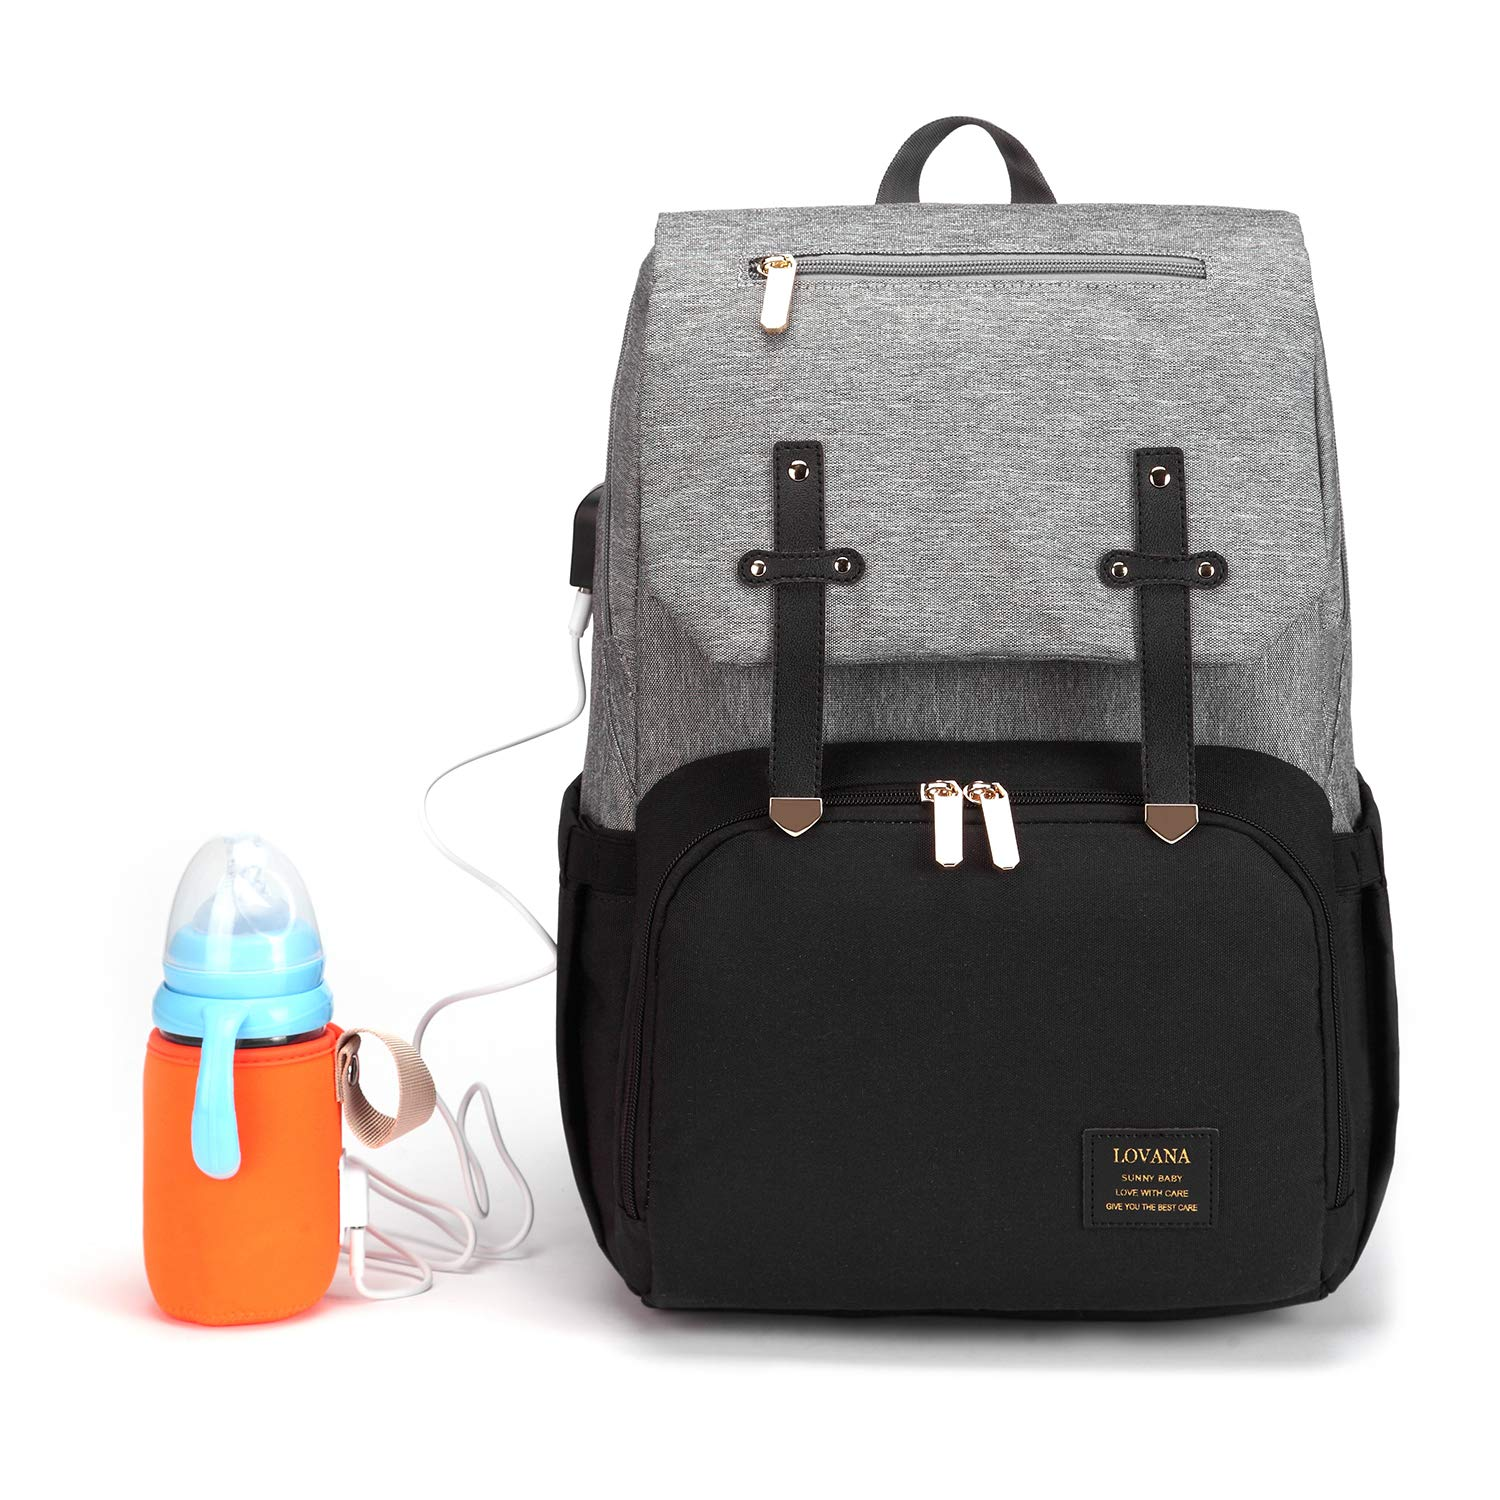 DIAPER BAG BACKPACK MATERNITY NAPPY BAG MULTIFUNCTION TRAVEL BACK PACK NEWBORN BABY CHANGING BAGS BOTTLE WARMER USB CHARGING PORT WATERPROOF AND LARGE CAPACITY FOR BOYS & GIRLS (BLACK & GRAY)